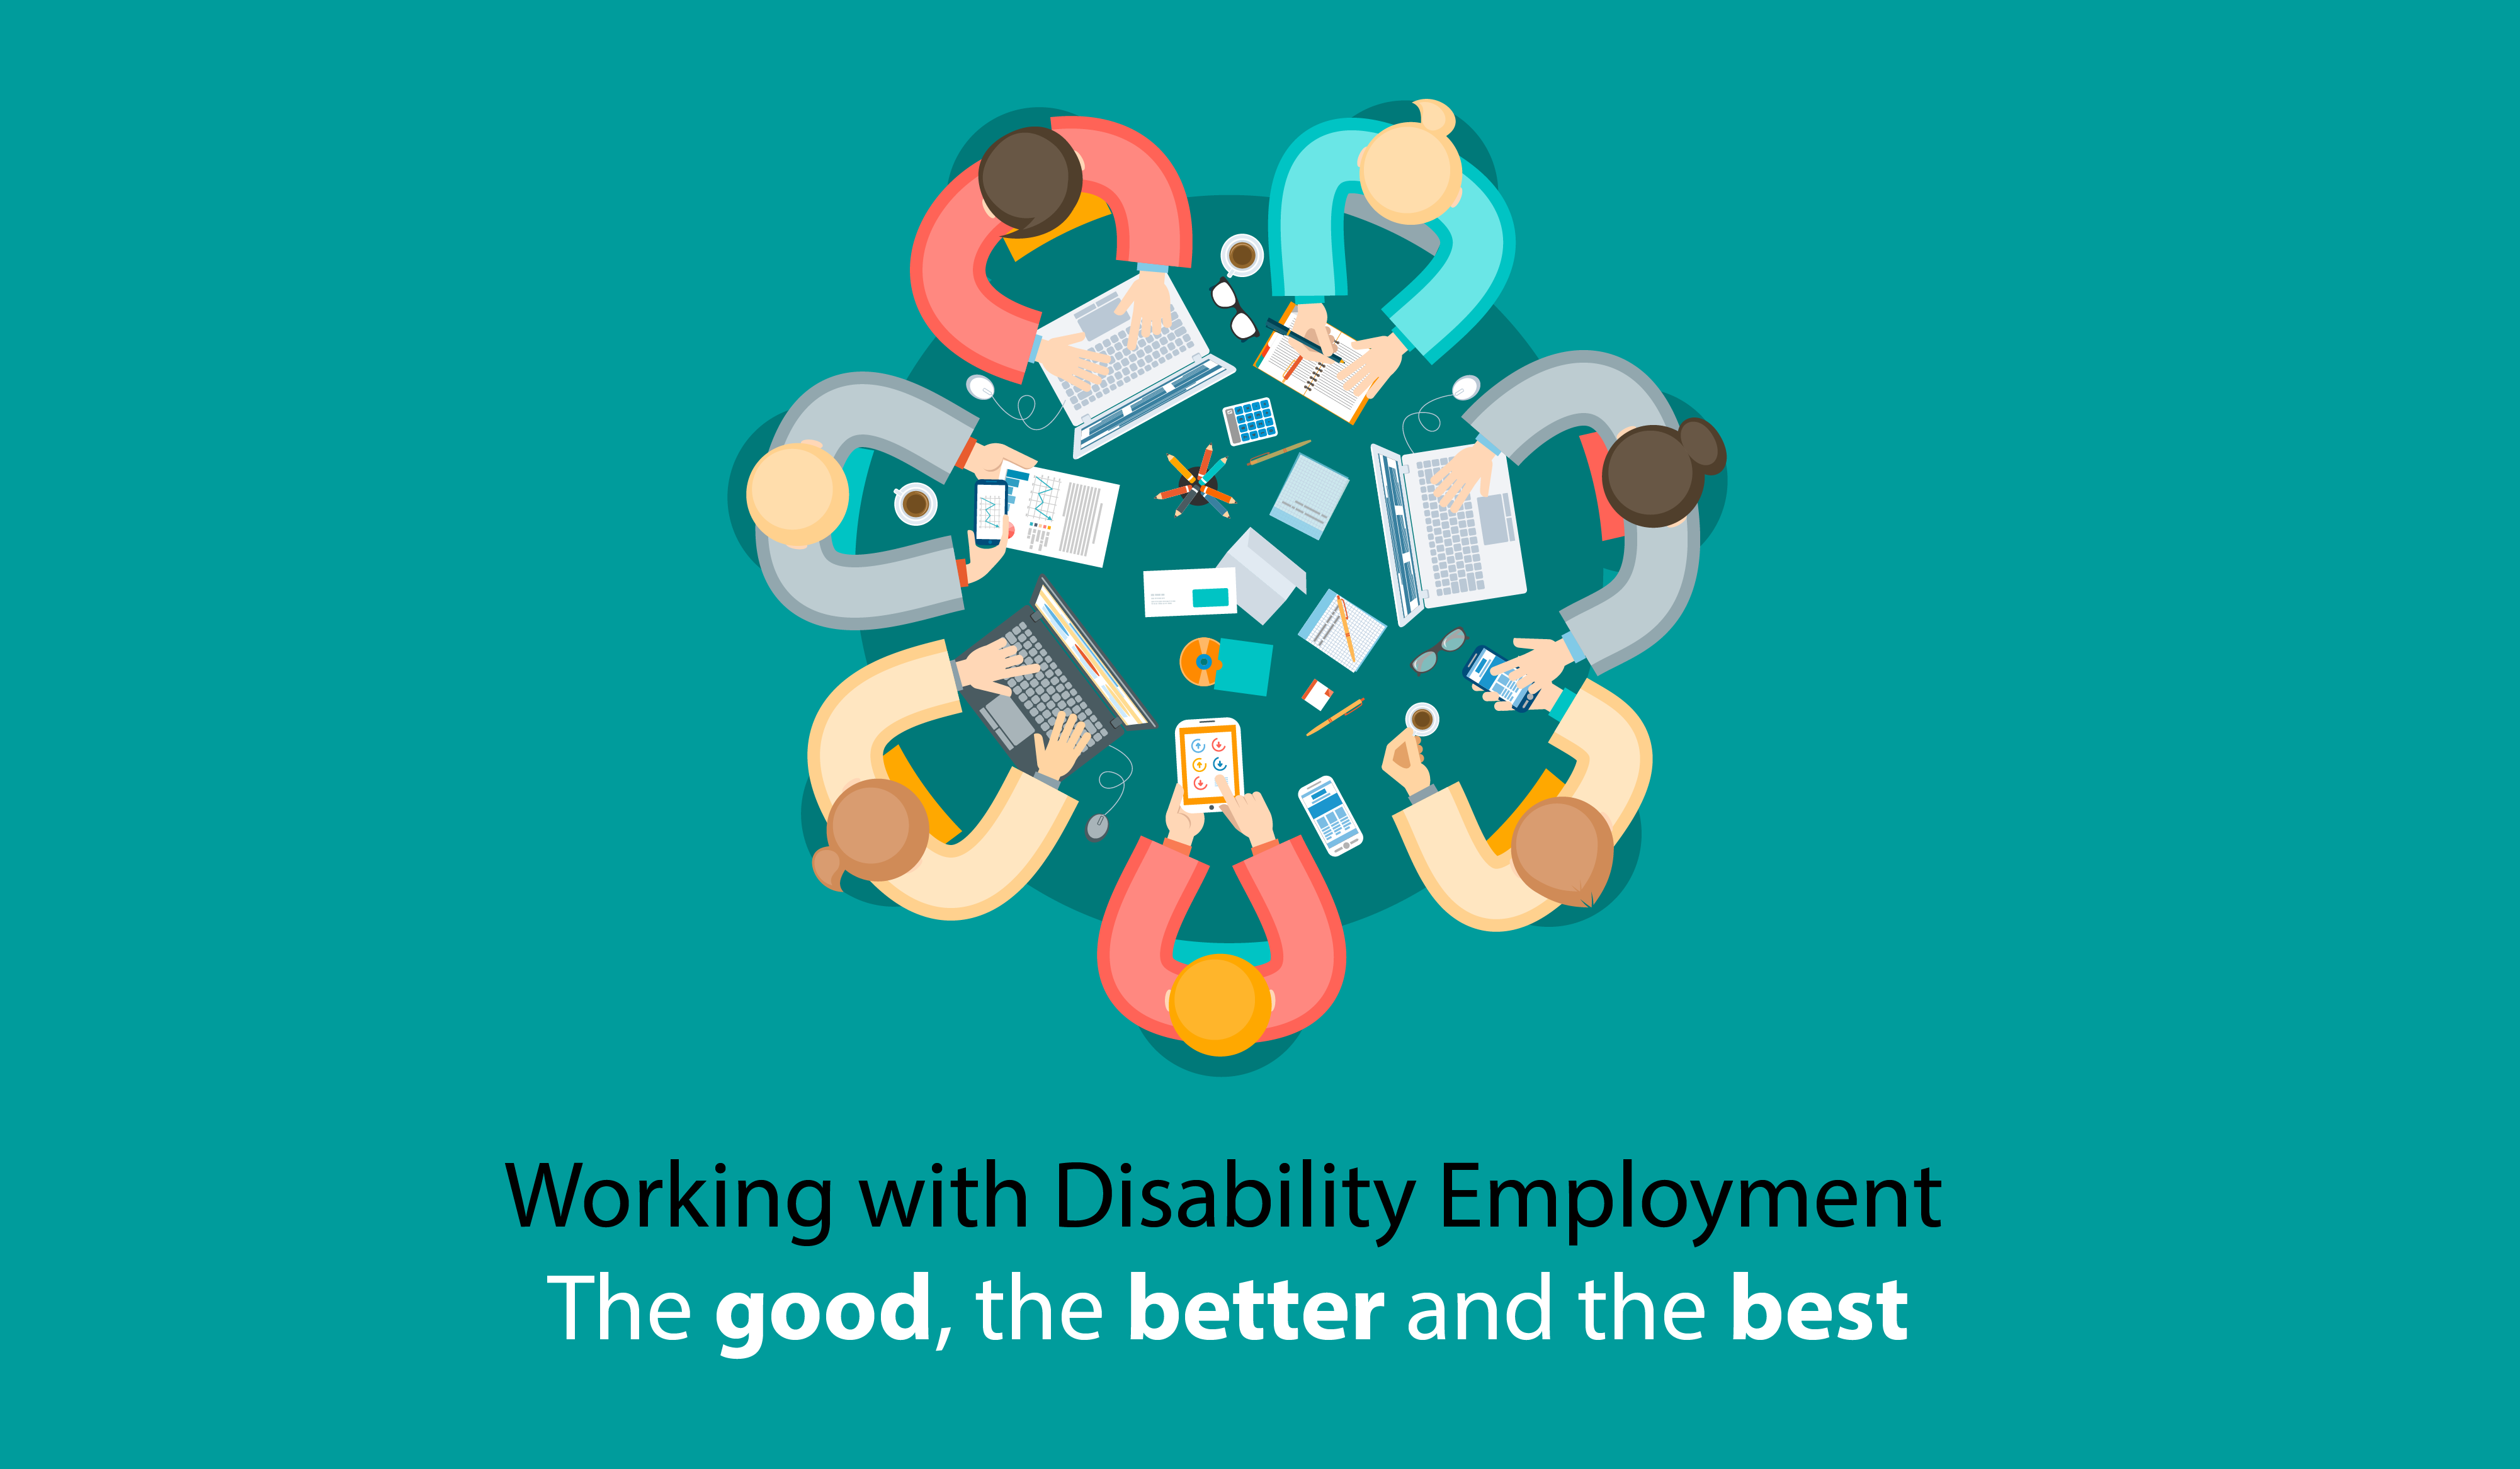 Working with Disability Employment: The good, the better and the best.